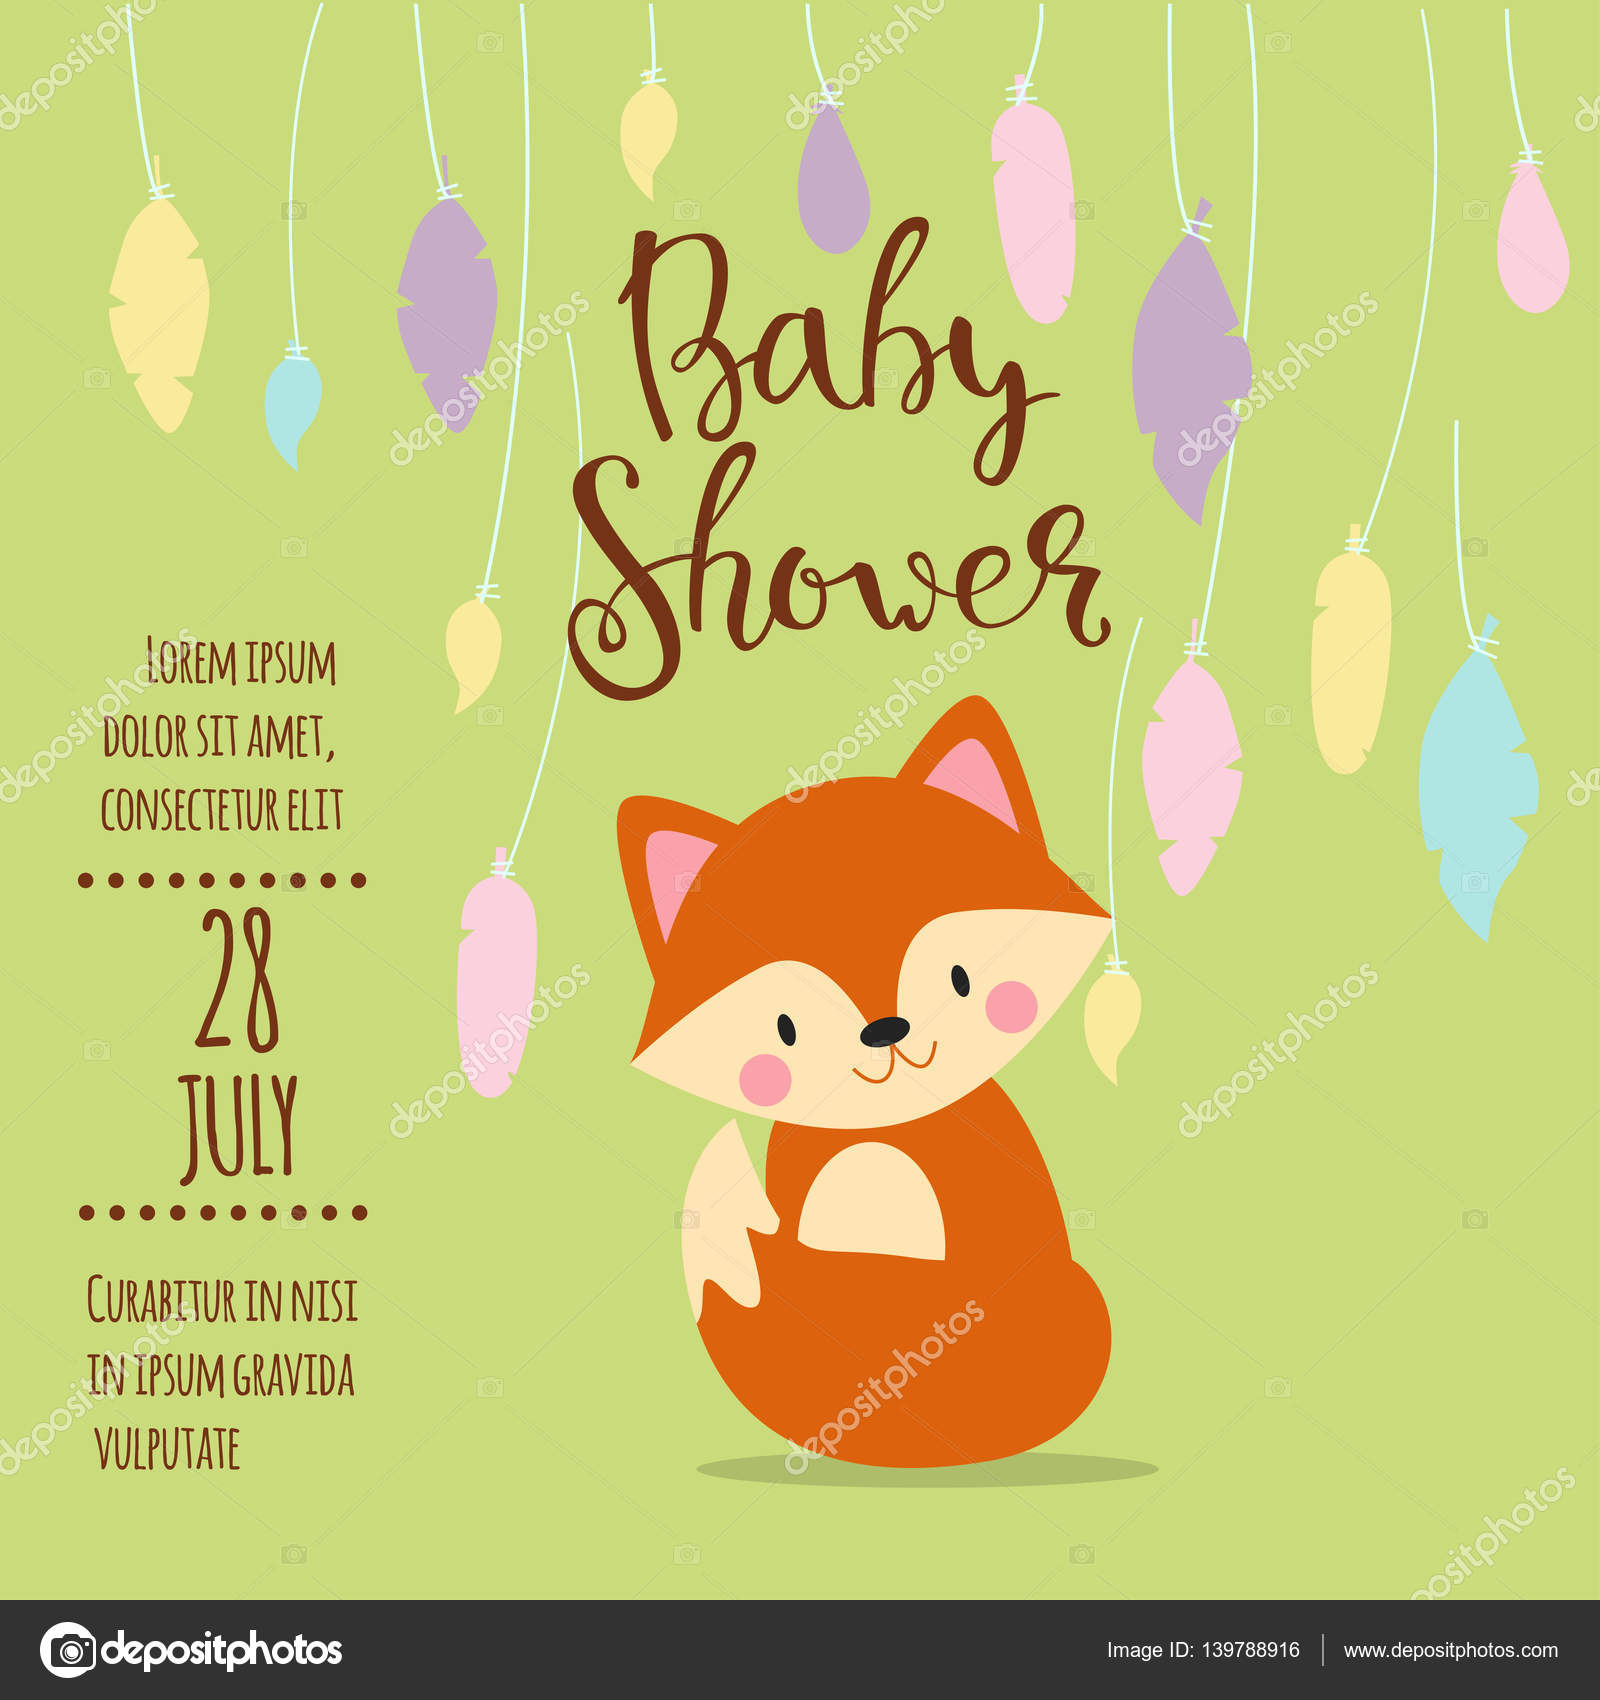 Baby shower invitation vector card stock vector vectorshow baby shower design with cute woodland fox born arrival vector graphic party template vintage cute birth invitation welcome greeting card decoration stopboris Choice Image